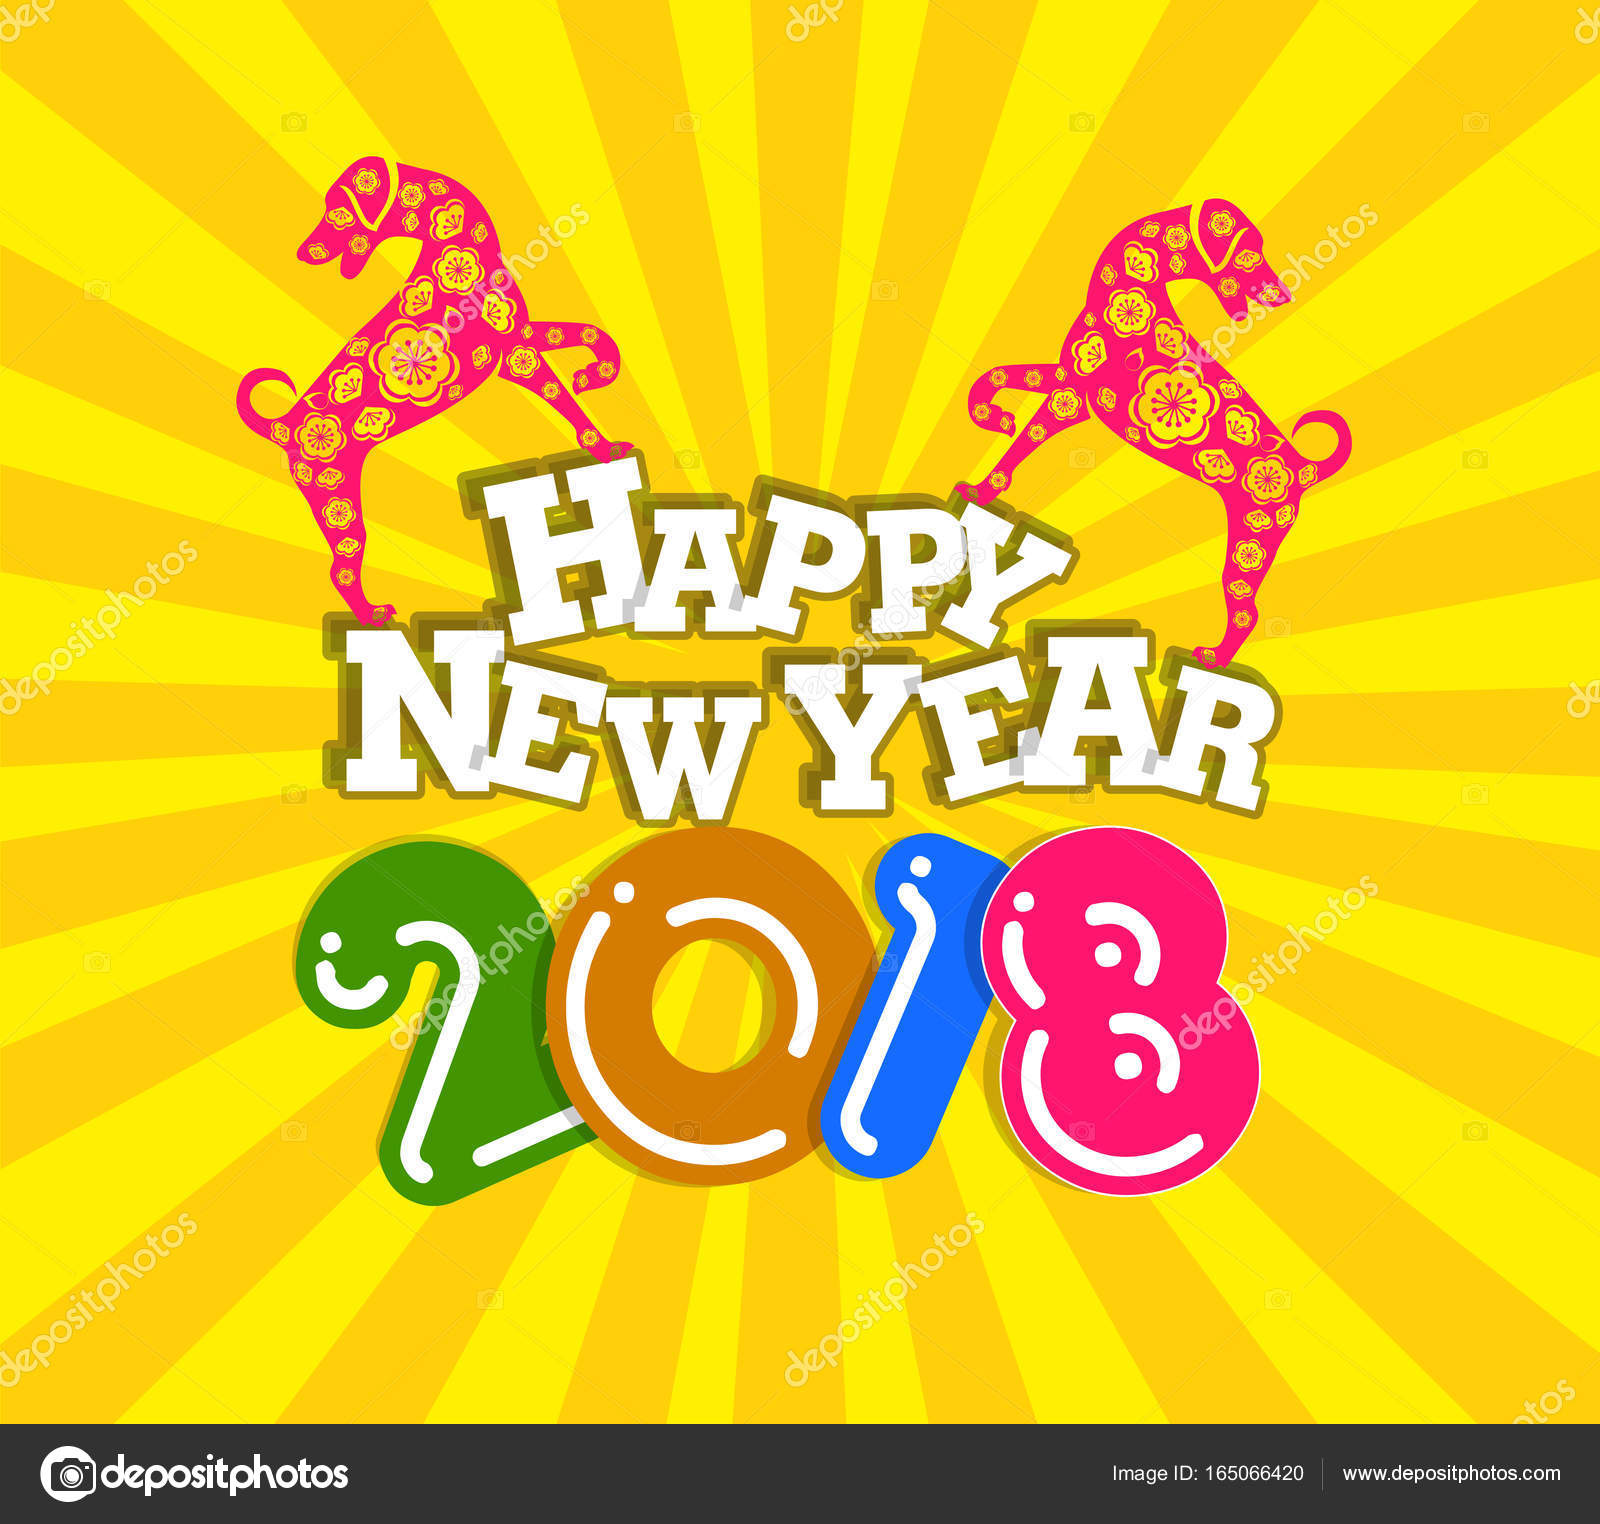 Happy New Year 2018 Year Of The Dog Chinese New Year Lunar New